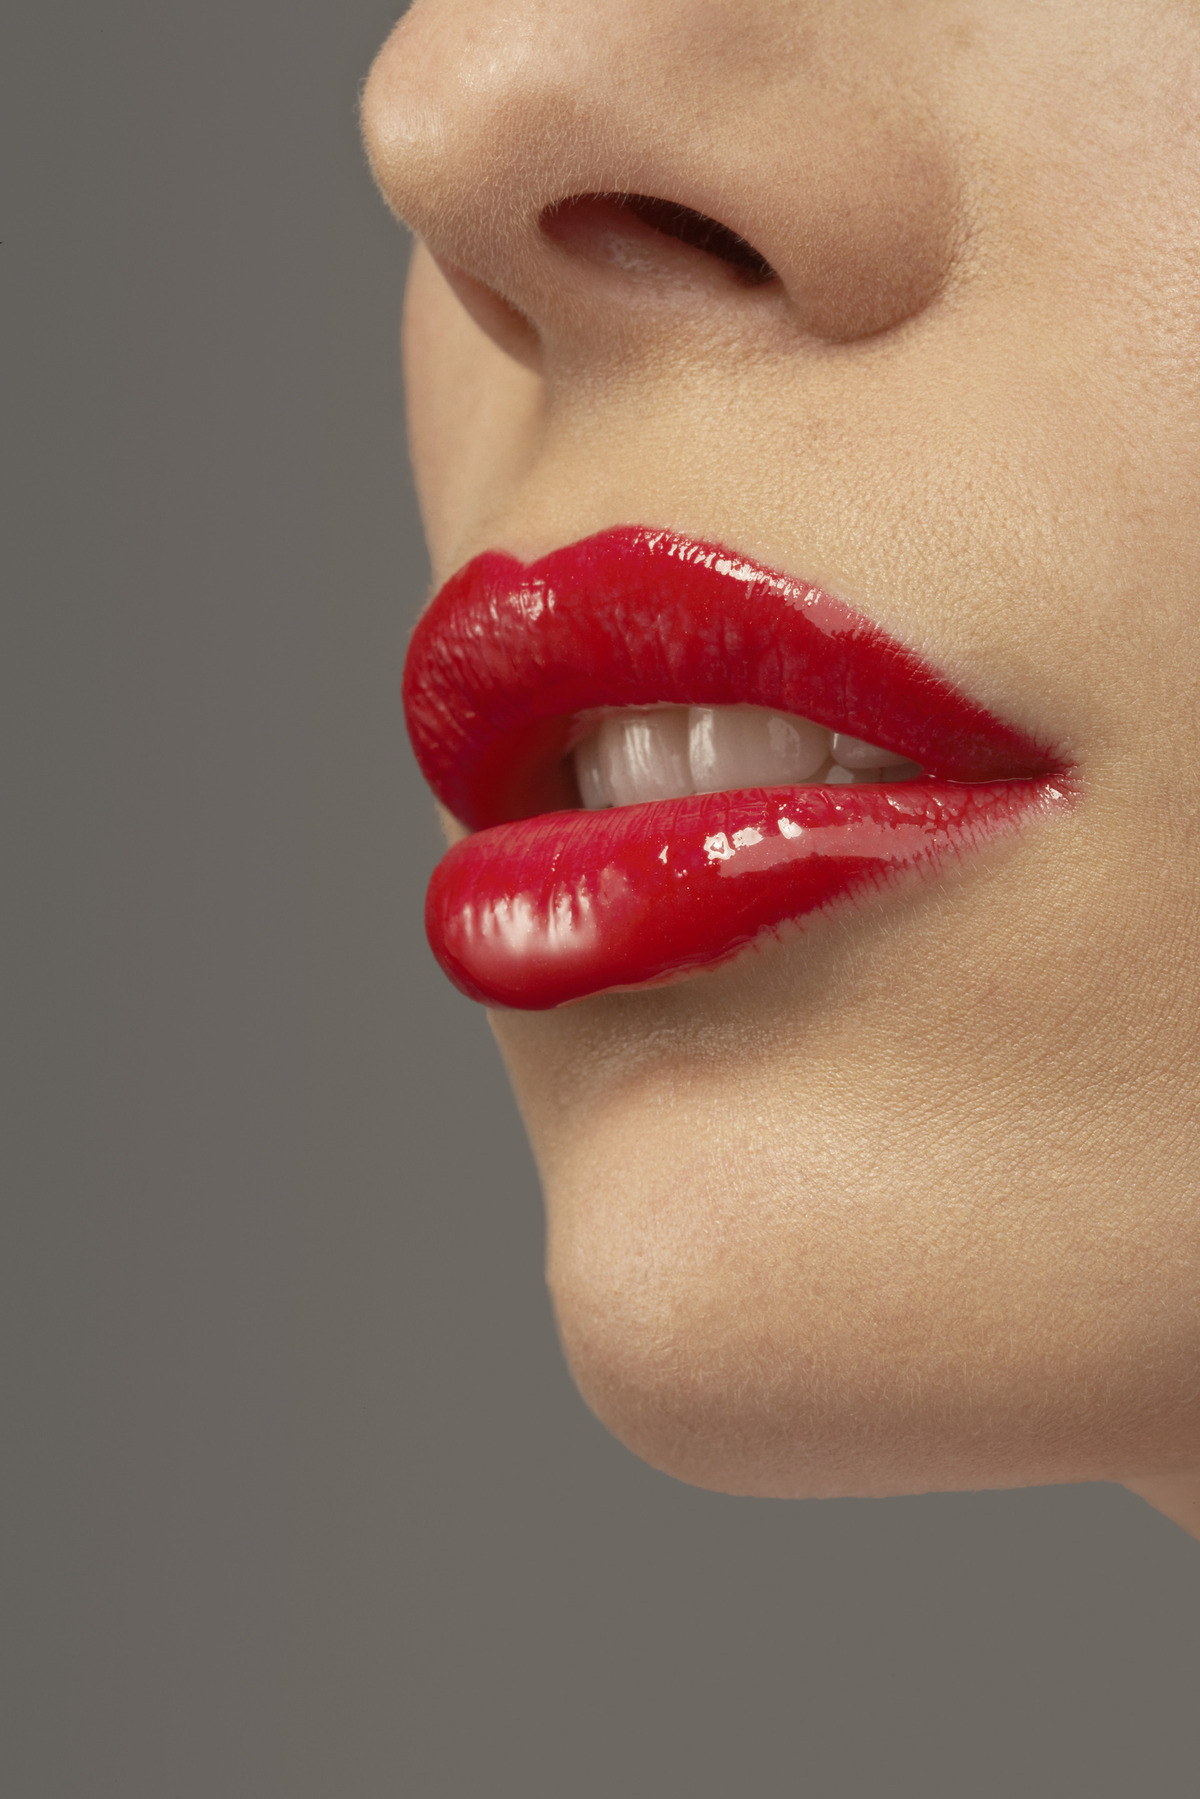 Woman Wearing Red Lipstick --- Image by © Corbis